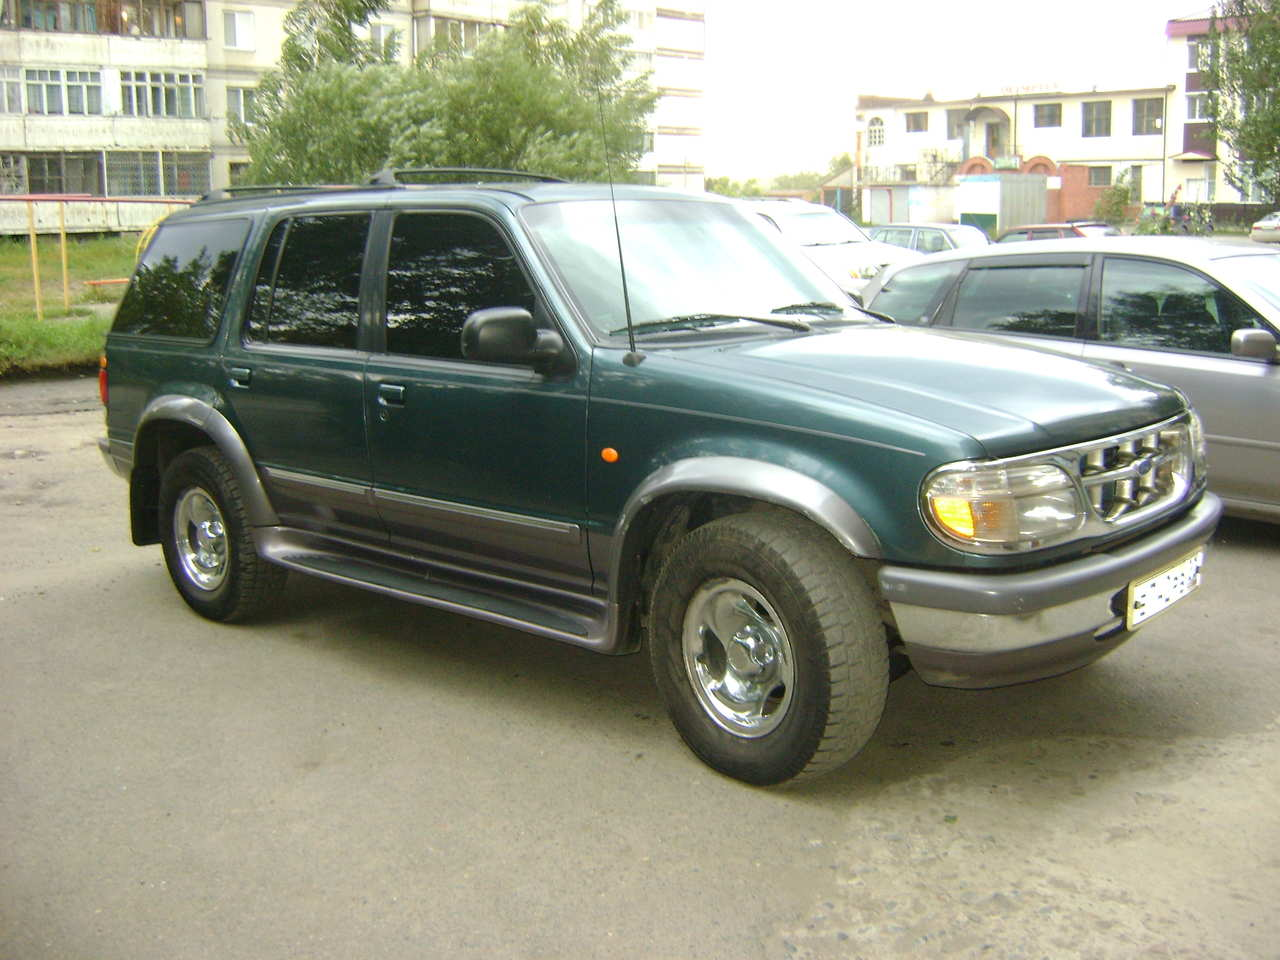 used 1997 ford explorer photos 4000cc gasoline manual for sale. Black Bedroom Furniture Sets. Home Design Ideas